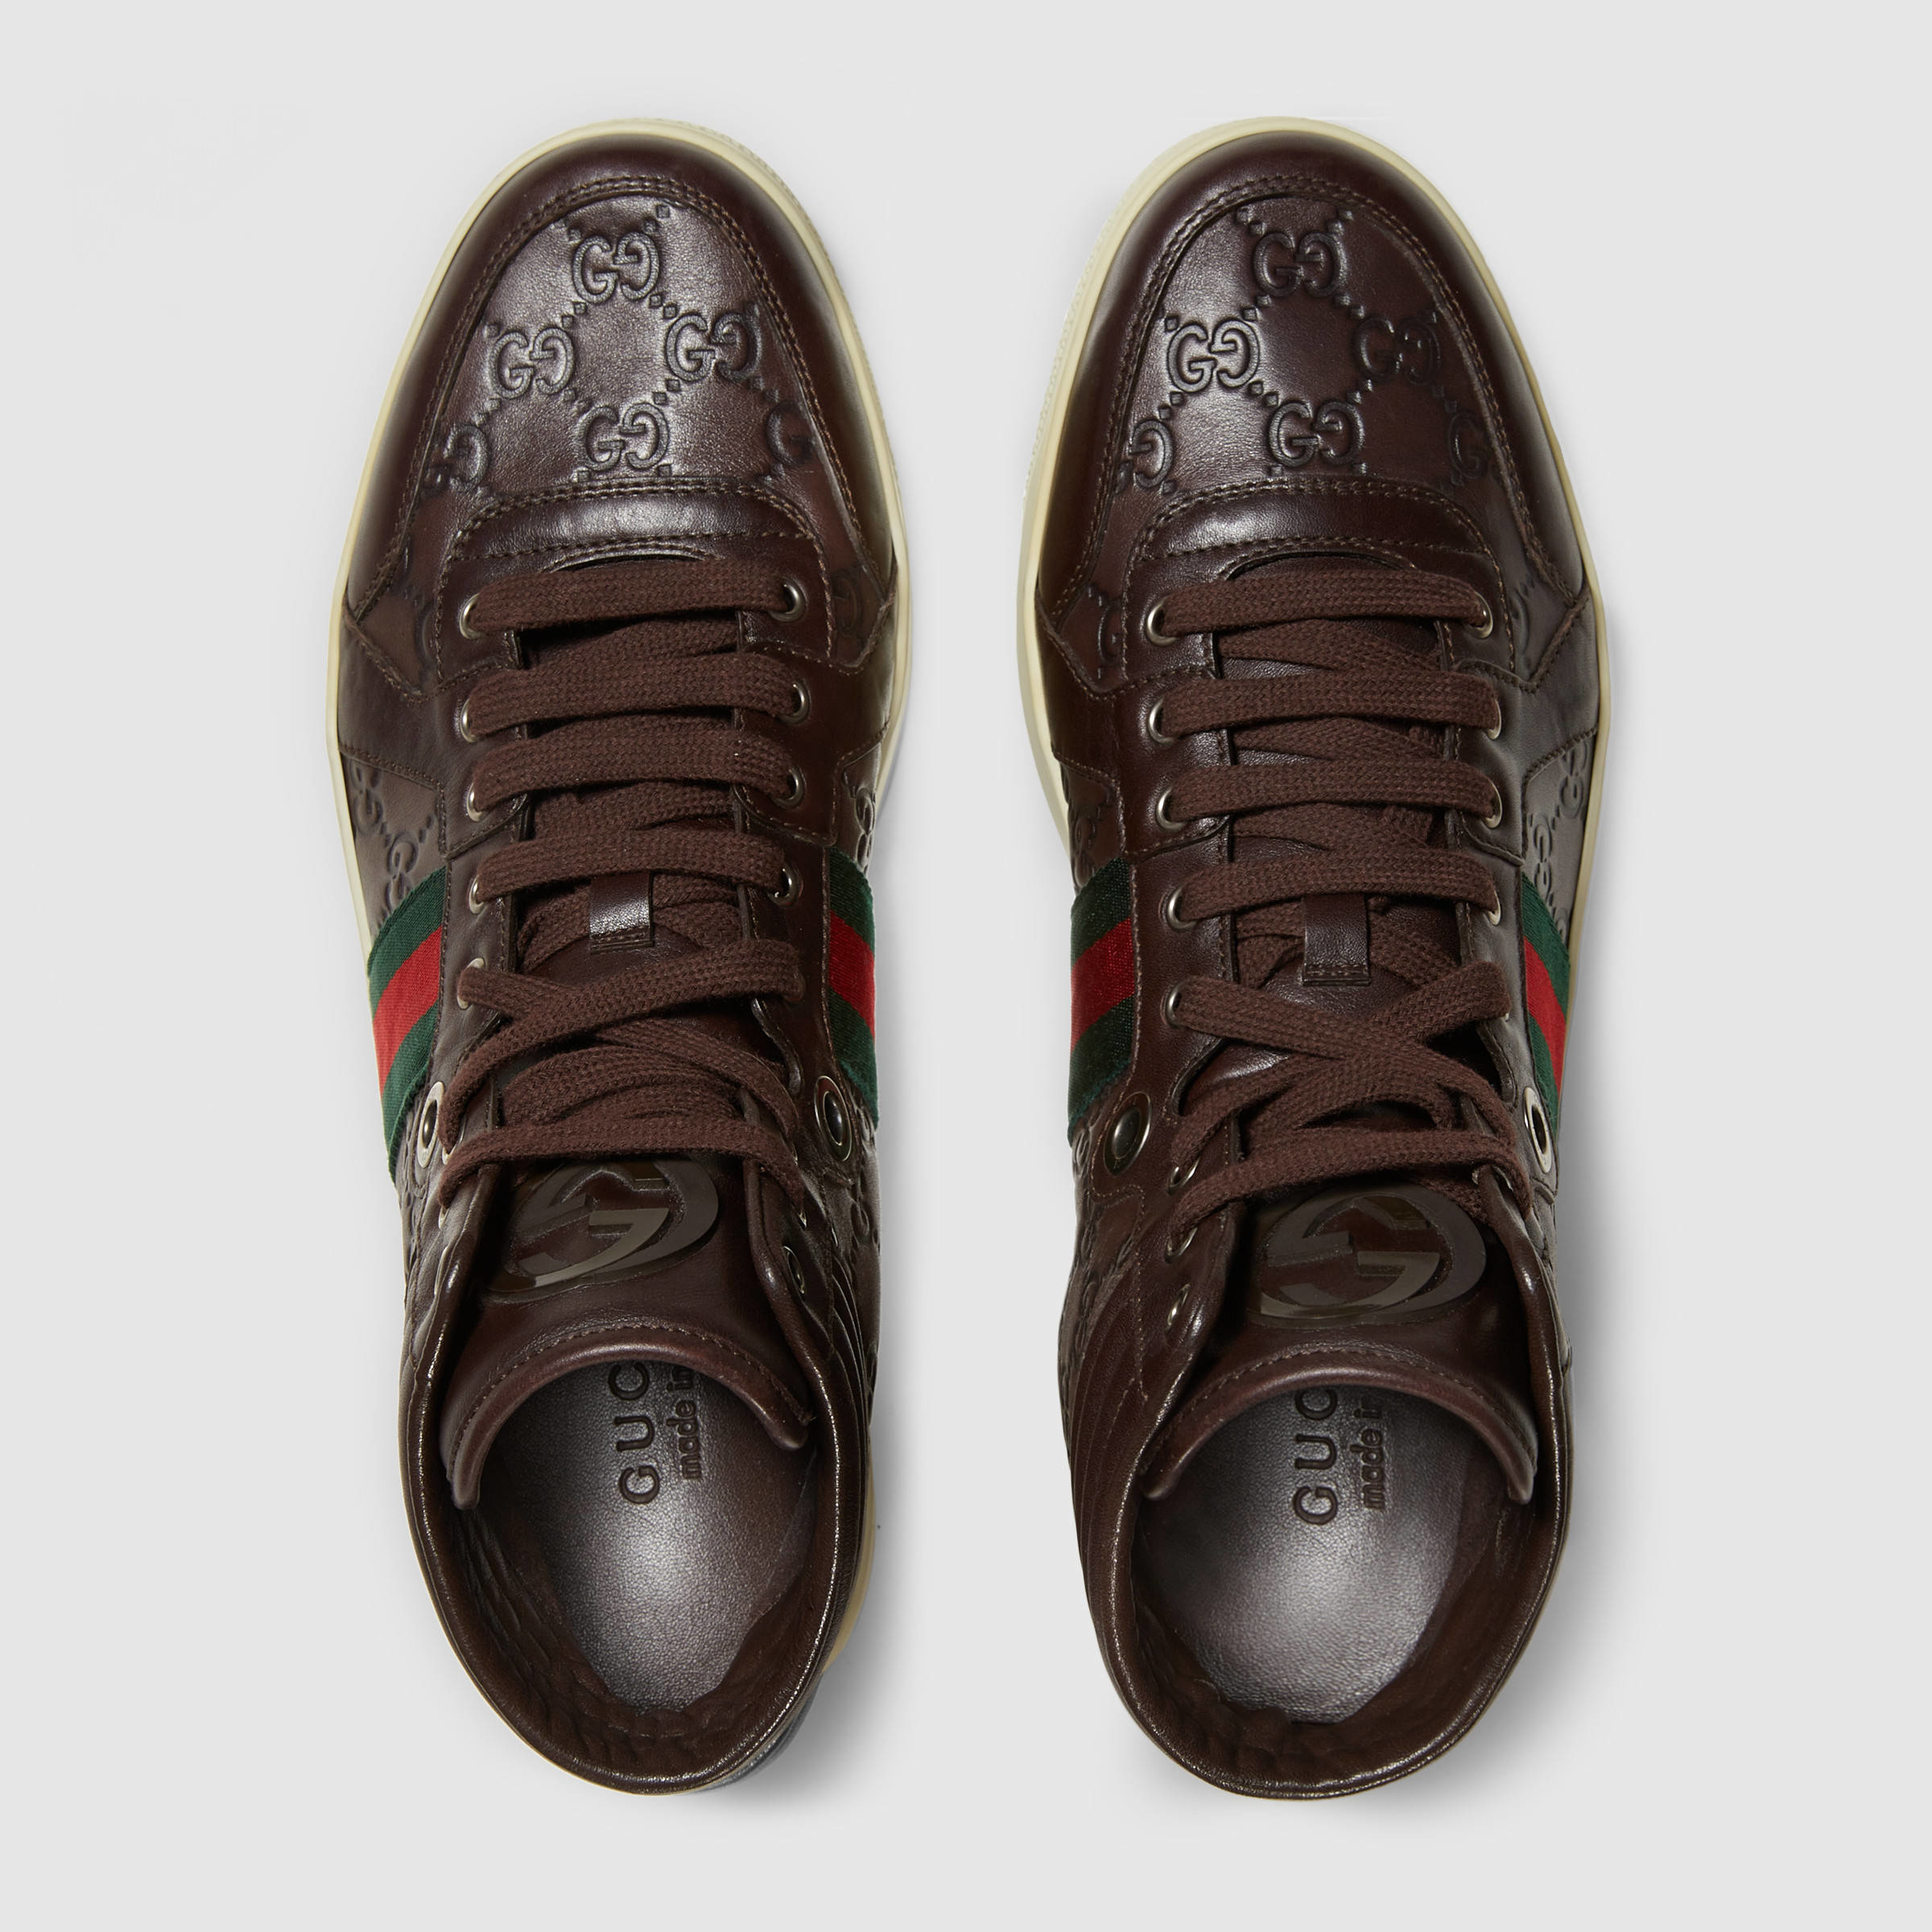 cf06f5b8106 Lyst - Gucci Ssima Leather High-top Sneaker in Brown for Men